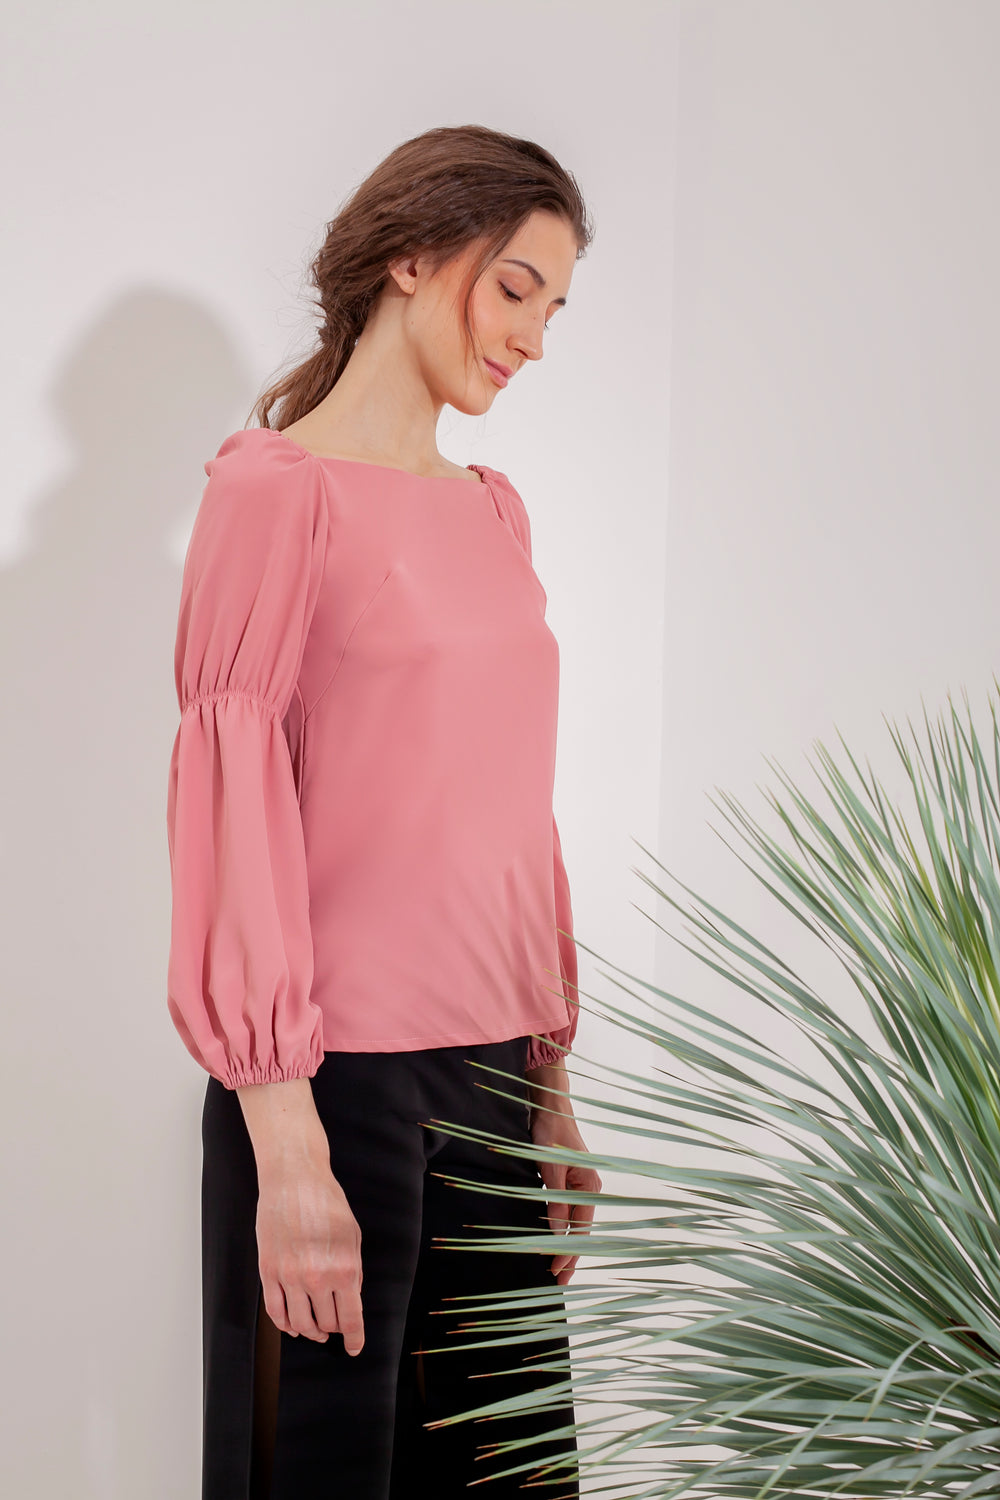 Domani Idalia Coral Top Modest Loose Women's Pink Top with Puff Long Sleeves in Crepe Stretch